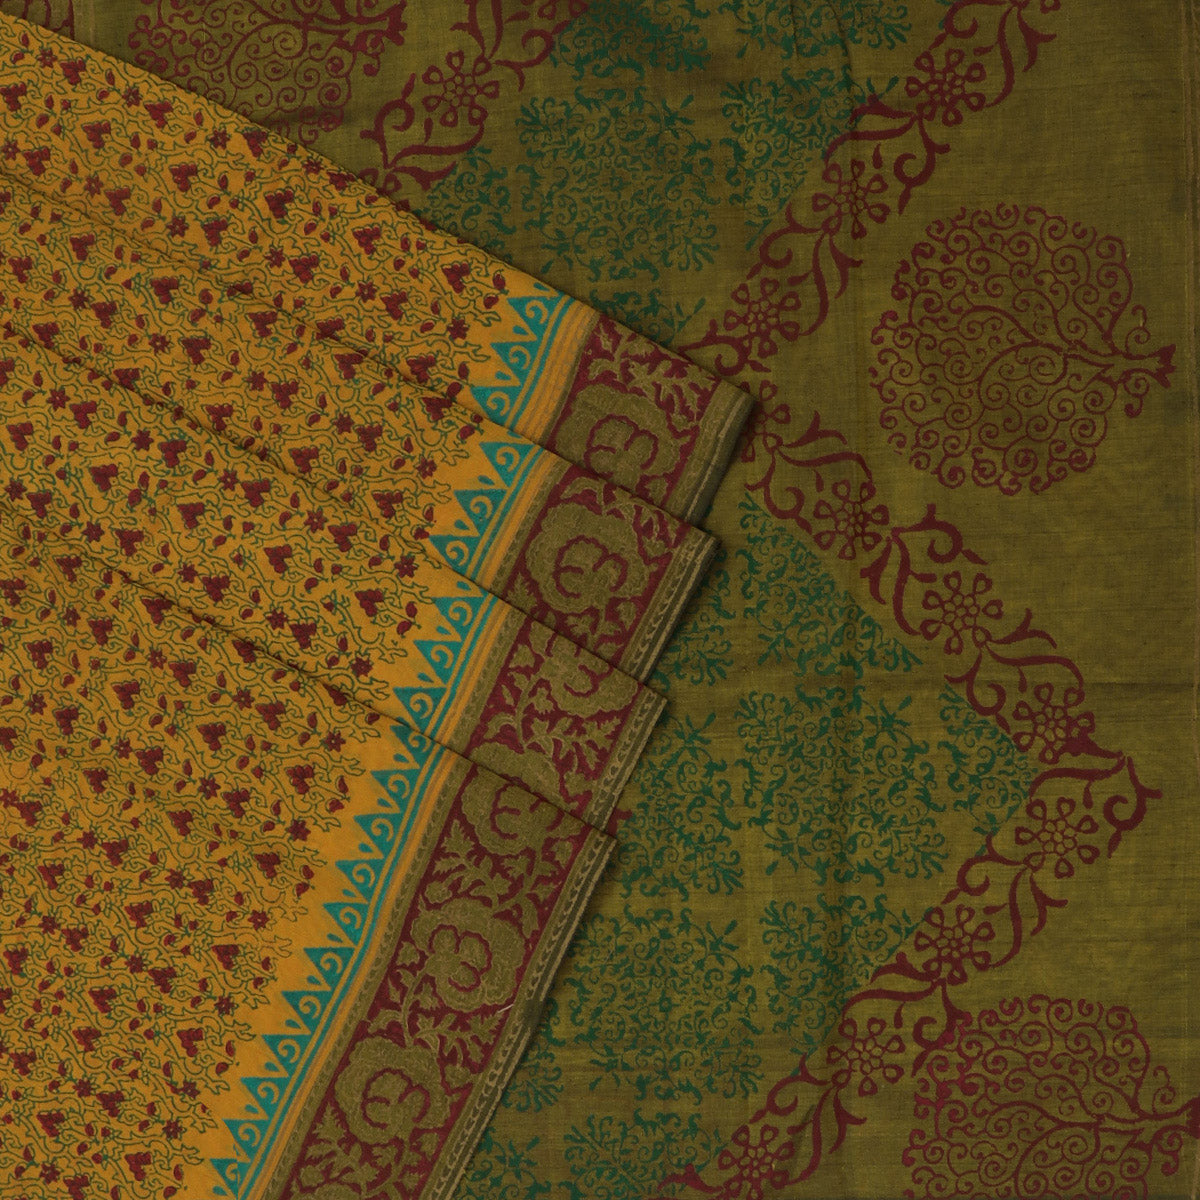 Printed Silk Cotton Saree Mustard and Maroon with simple border